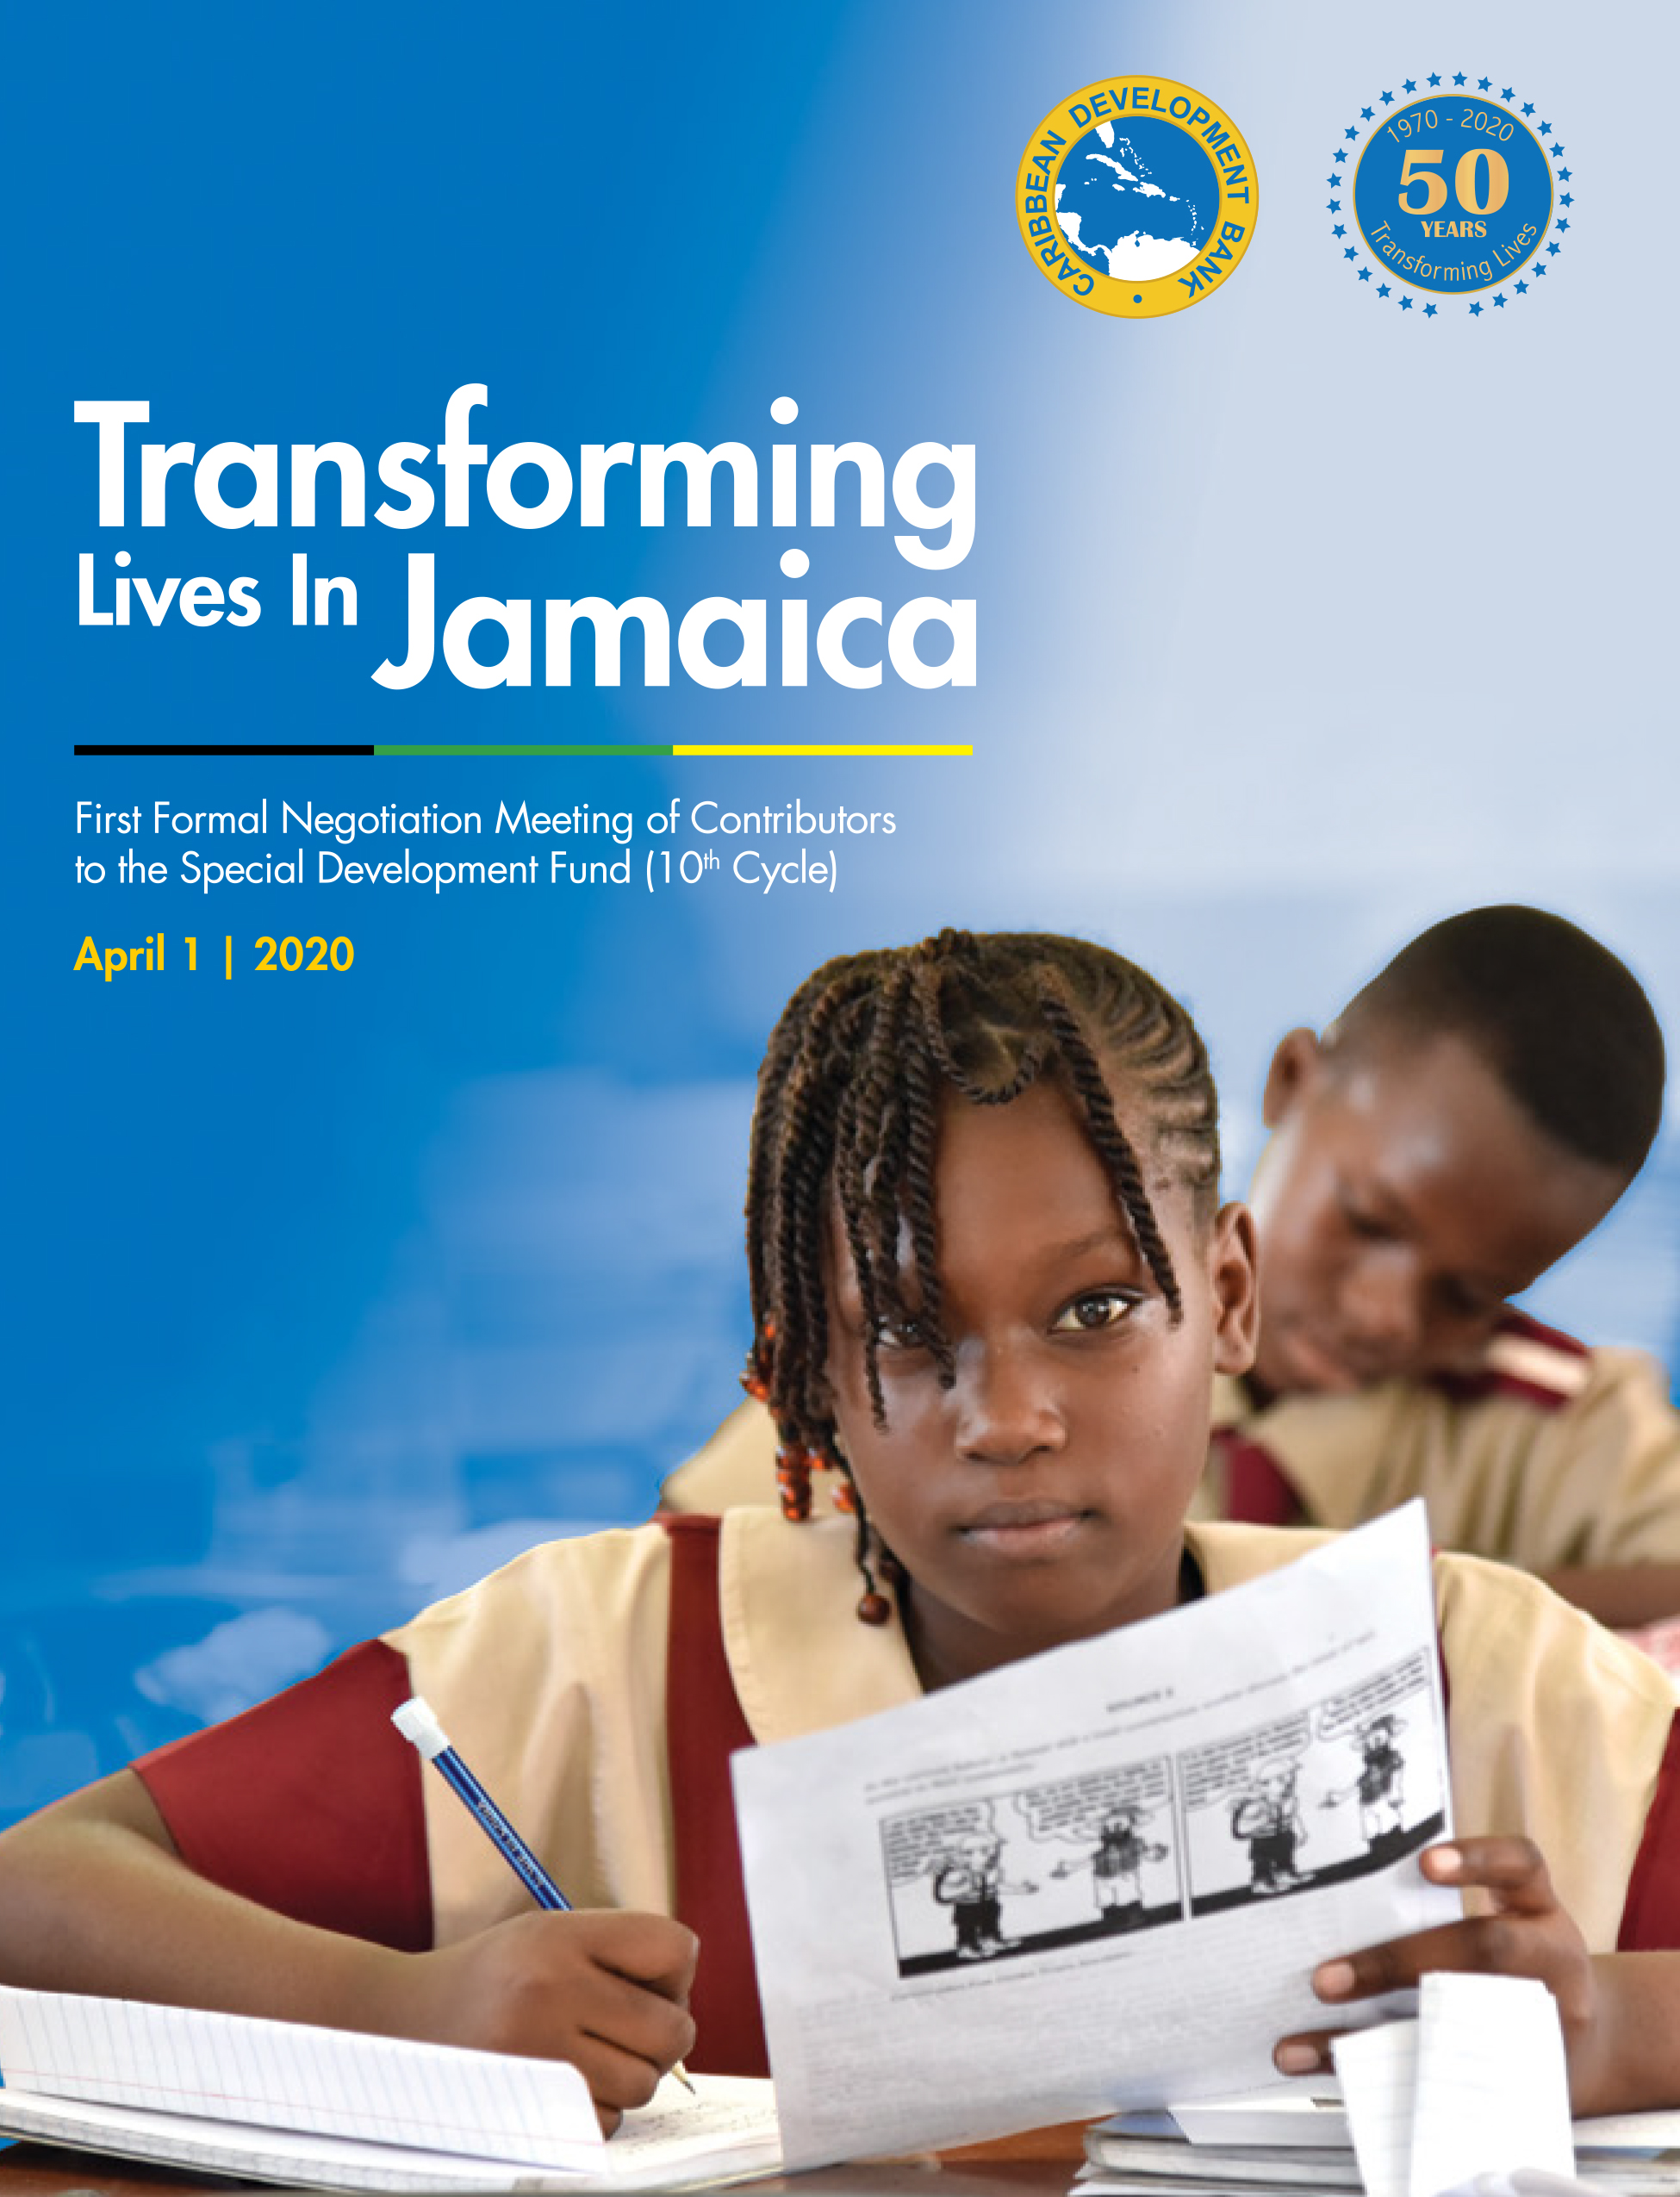 The booklet (mobile-friendly for offline reading) provides an overview on CDB Special Development Fund (SDF), the situation in Jamaica, and six stories on projects, implemented by the Basic Needs Trust Fund (BNTF), a programme of the SDF, between 2013 and 2019 in Jamaica.    https://www.caribank.org/sites/default/files/publication-resources/SDF Project Booklet final.pdf